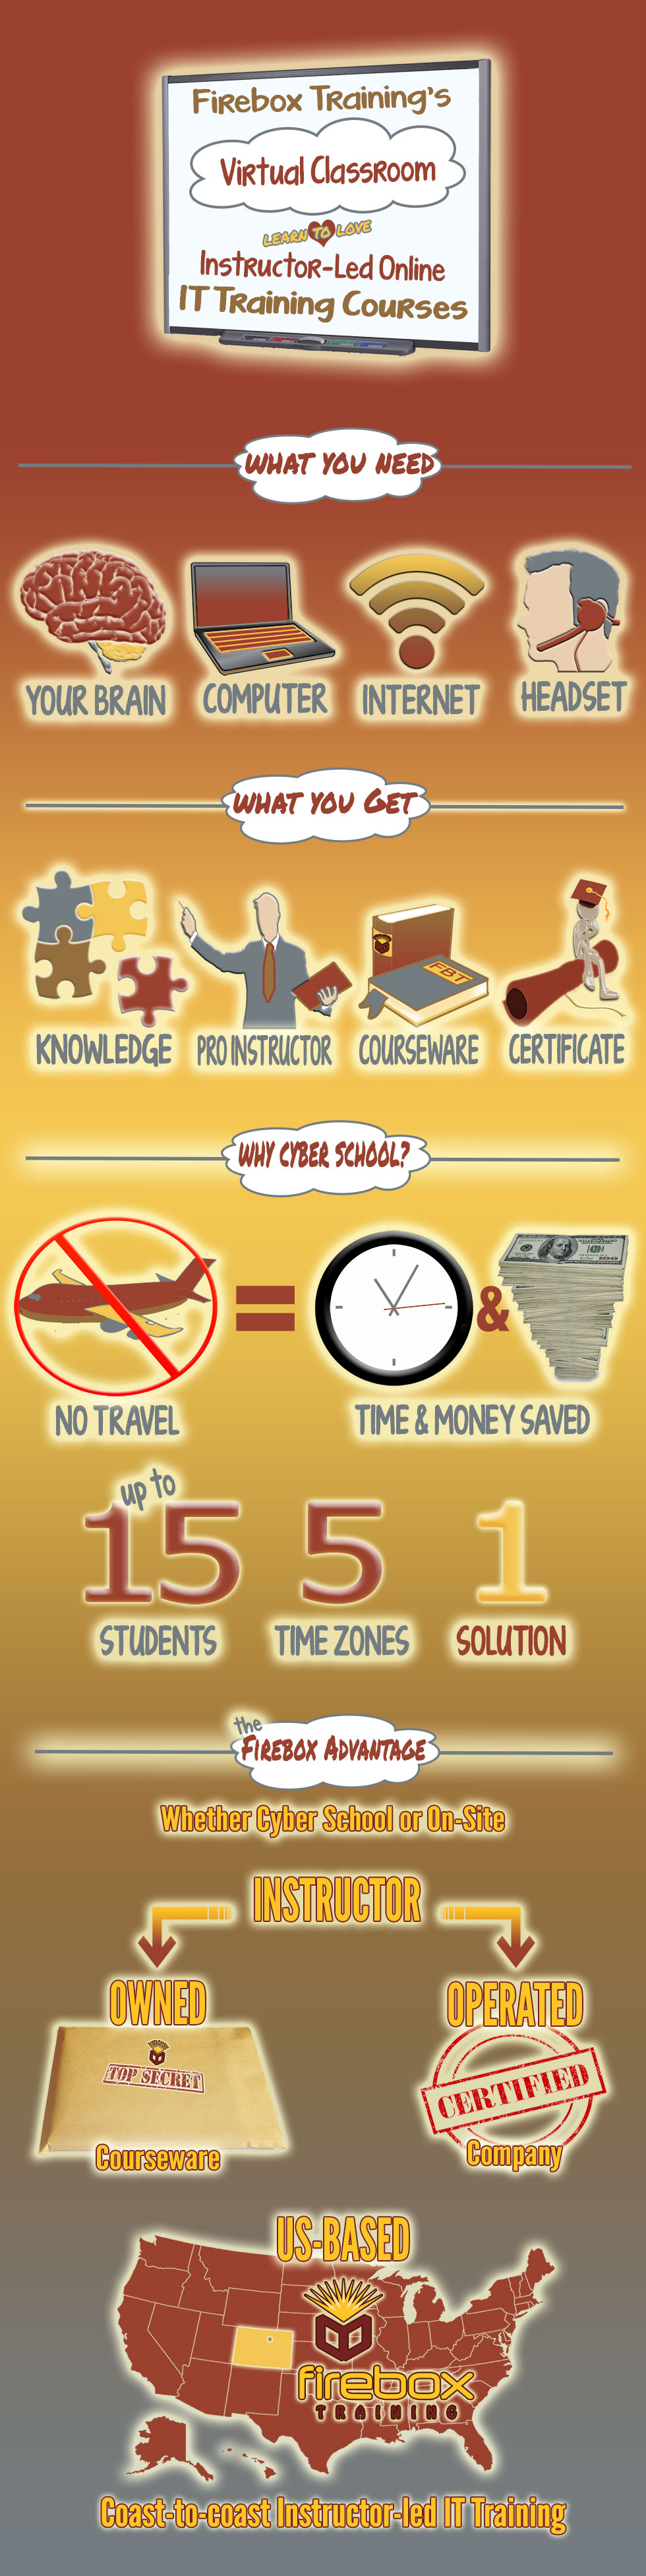 online IT training infographic